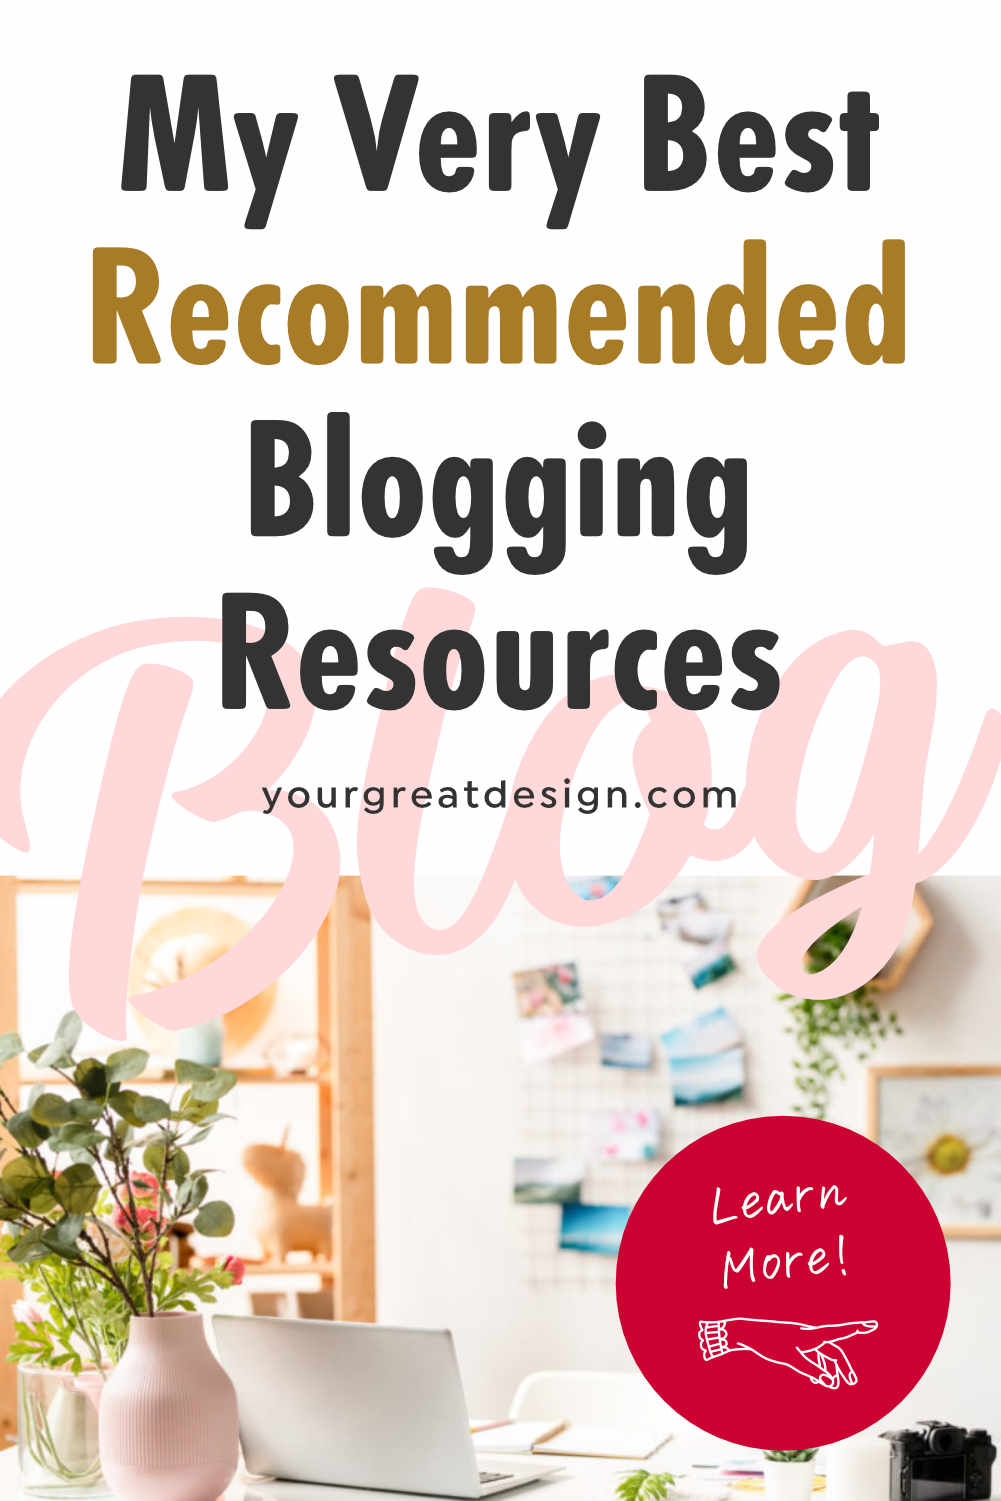 My Very Best Recommended Blogging Resources